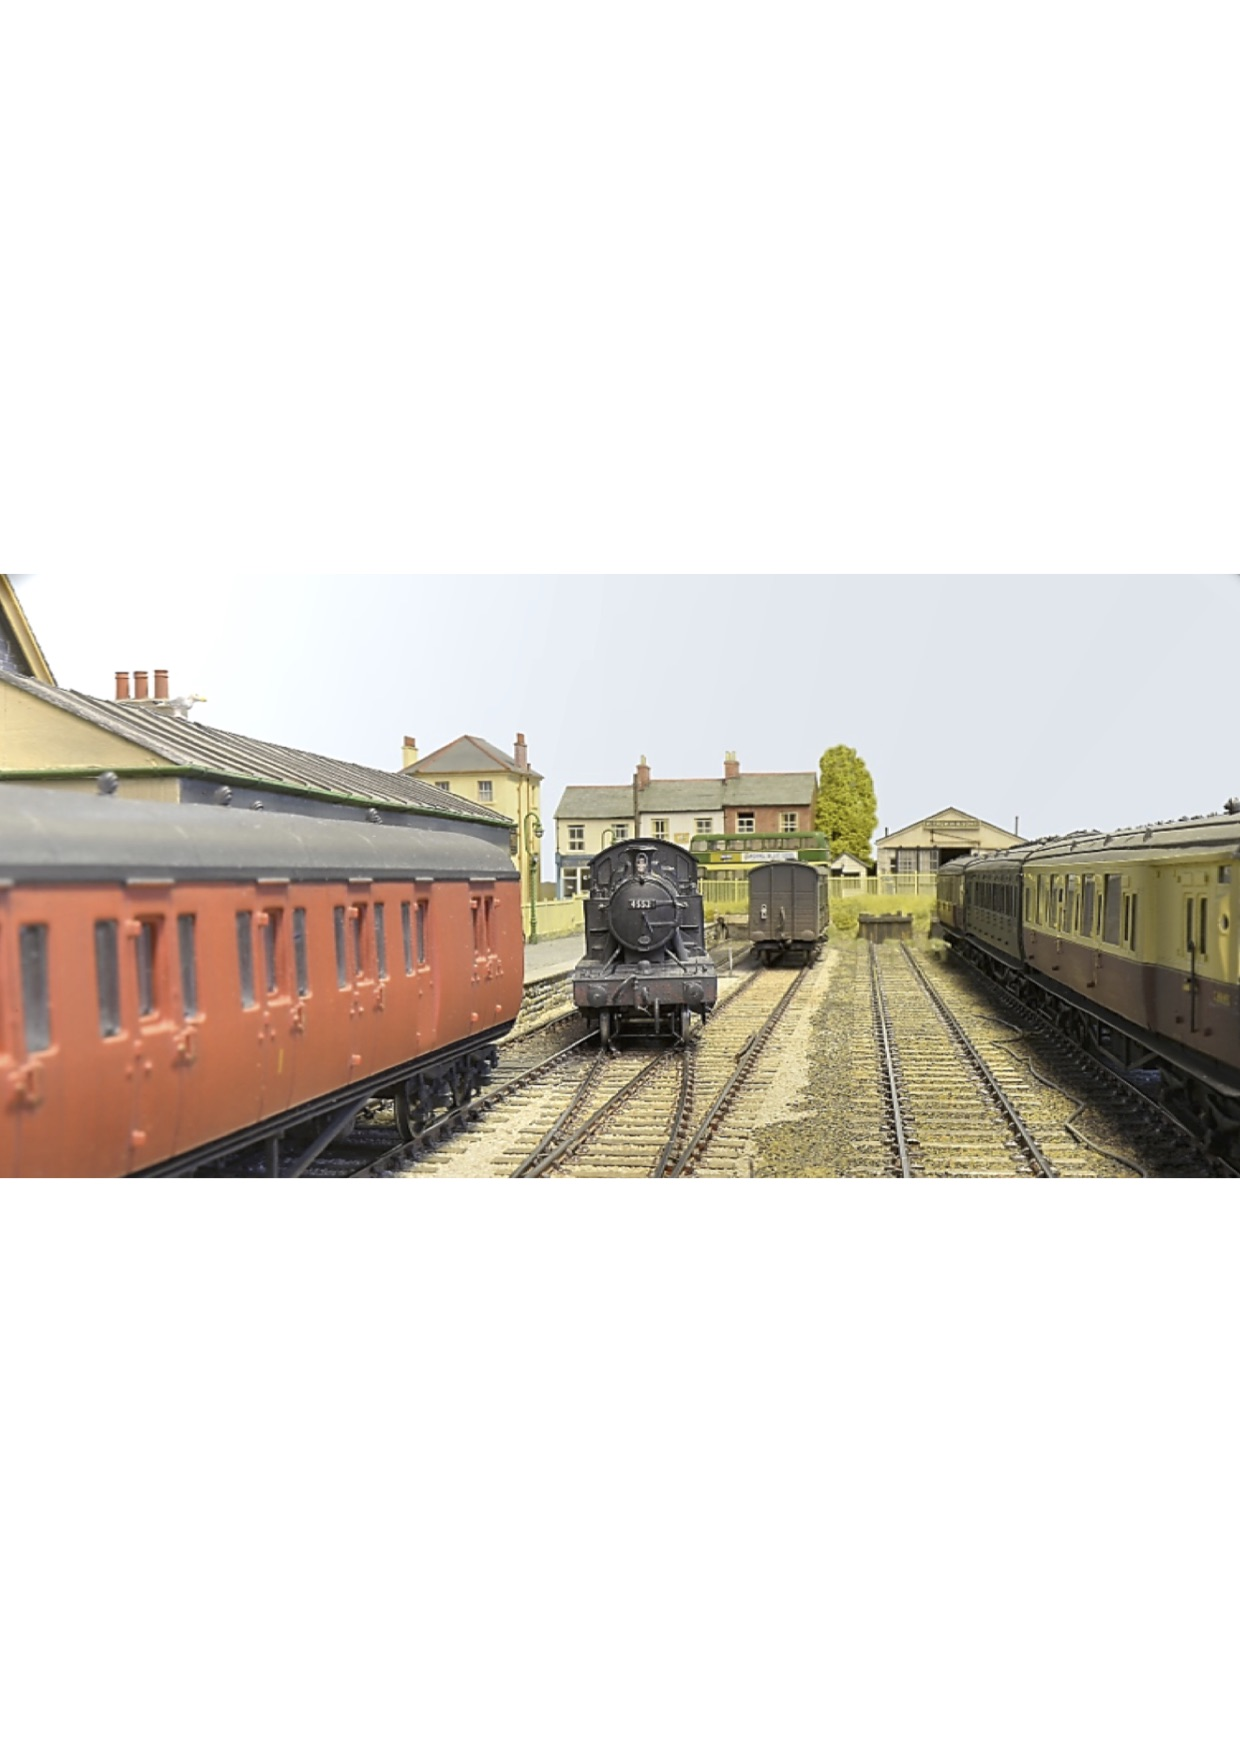 EXHIBITION: BRITISH FINE-SCALE RAILWAY MODELLING